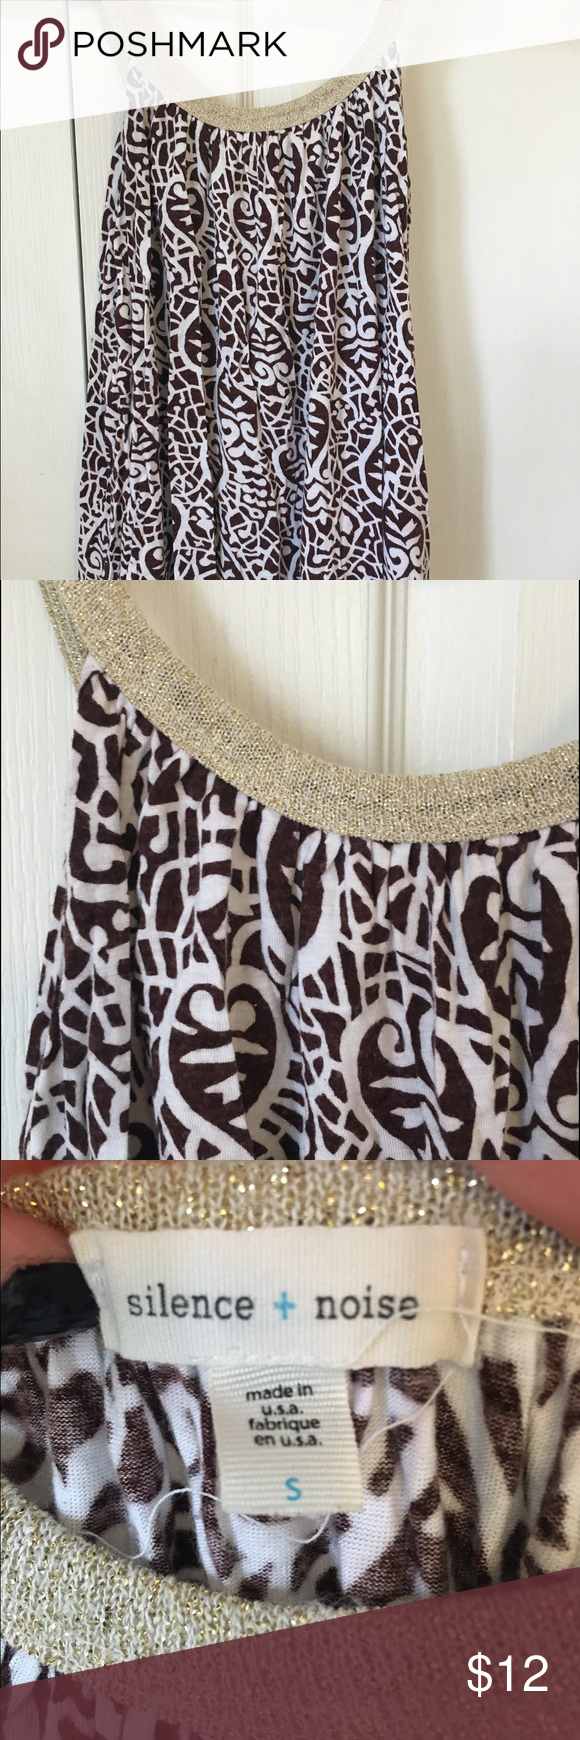 Silence + Noise Flowy Tank Brown and white patterned tank with gold detailing at neckline. Flowy, great condition! silence + noise Tops Tank Tops